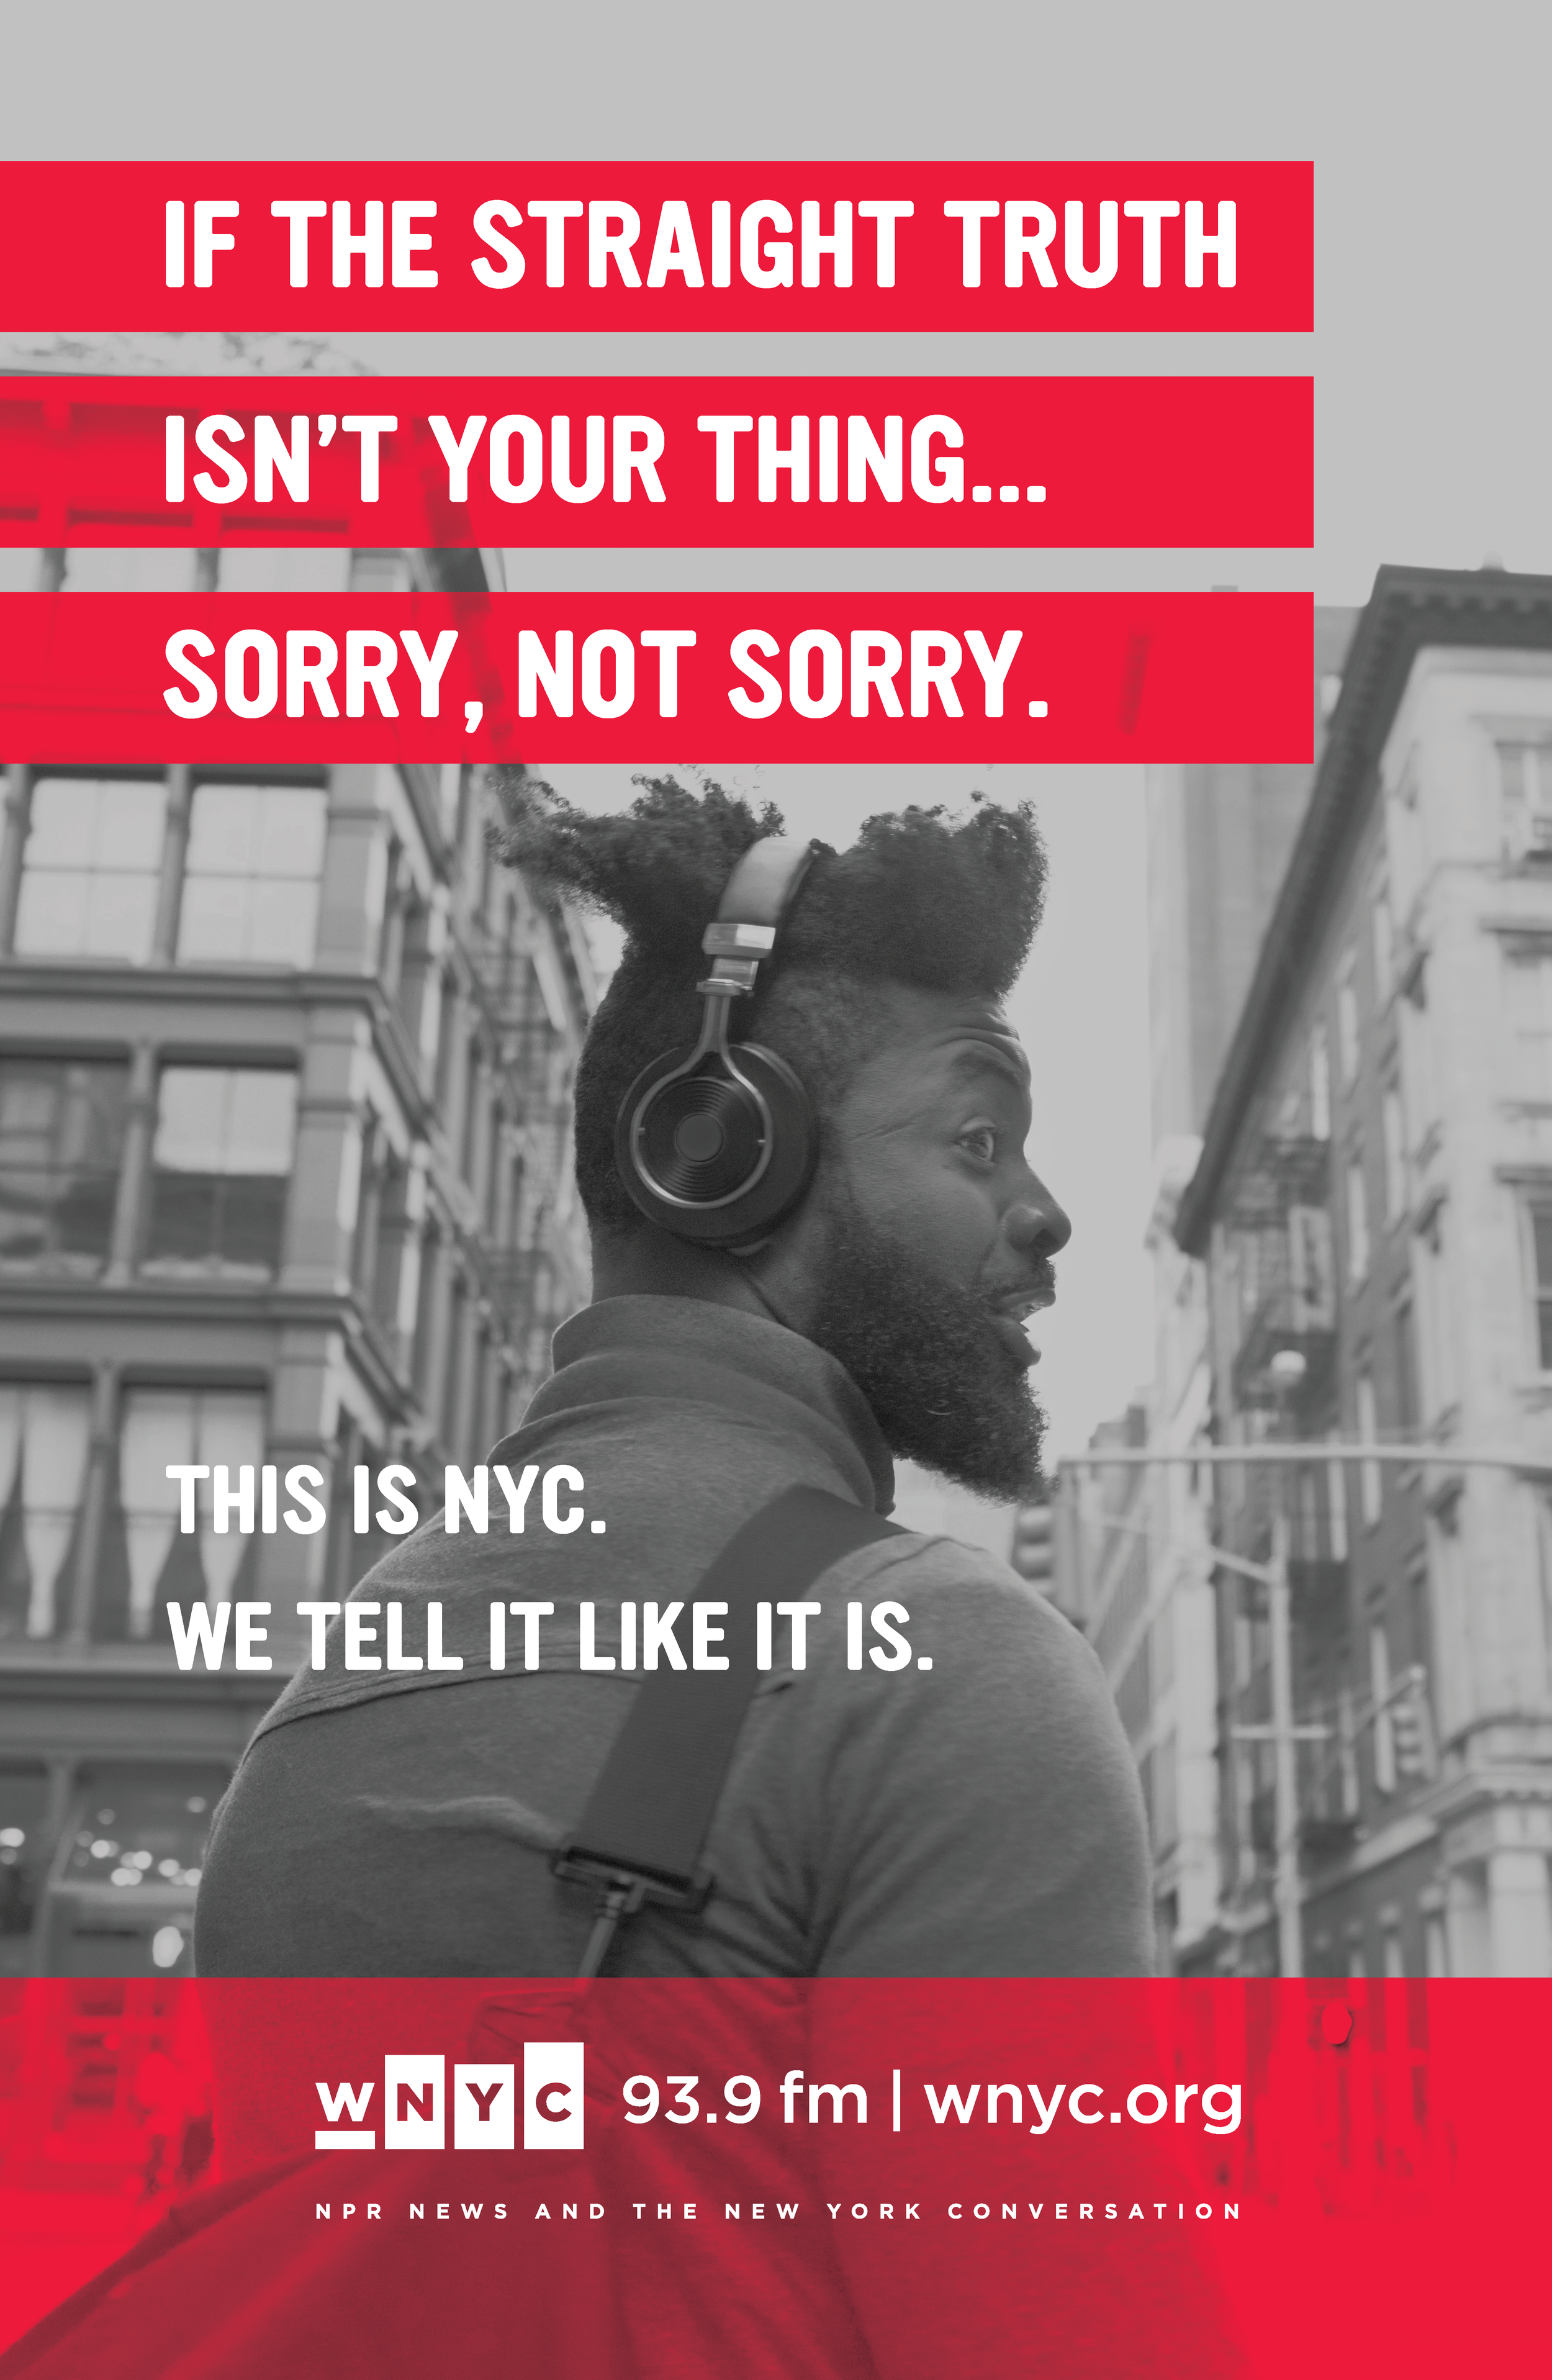 WNYC06SORRY_NYR_1S_46x30.png